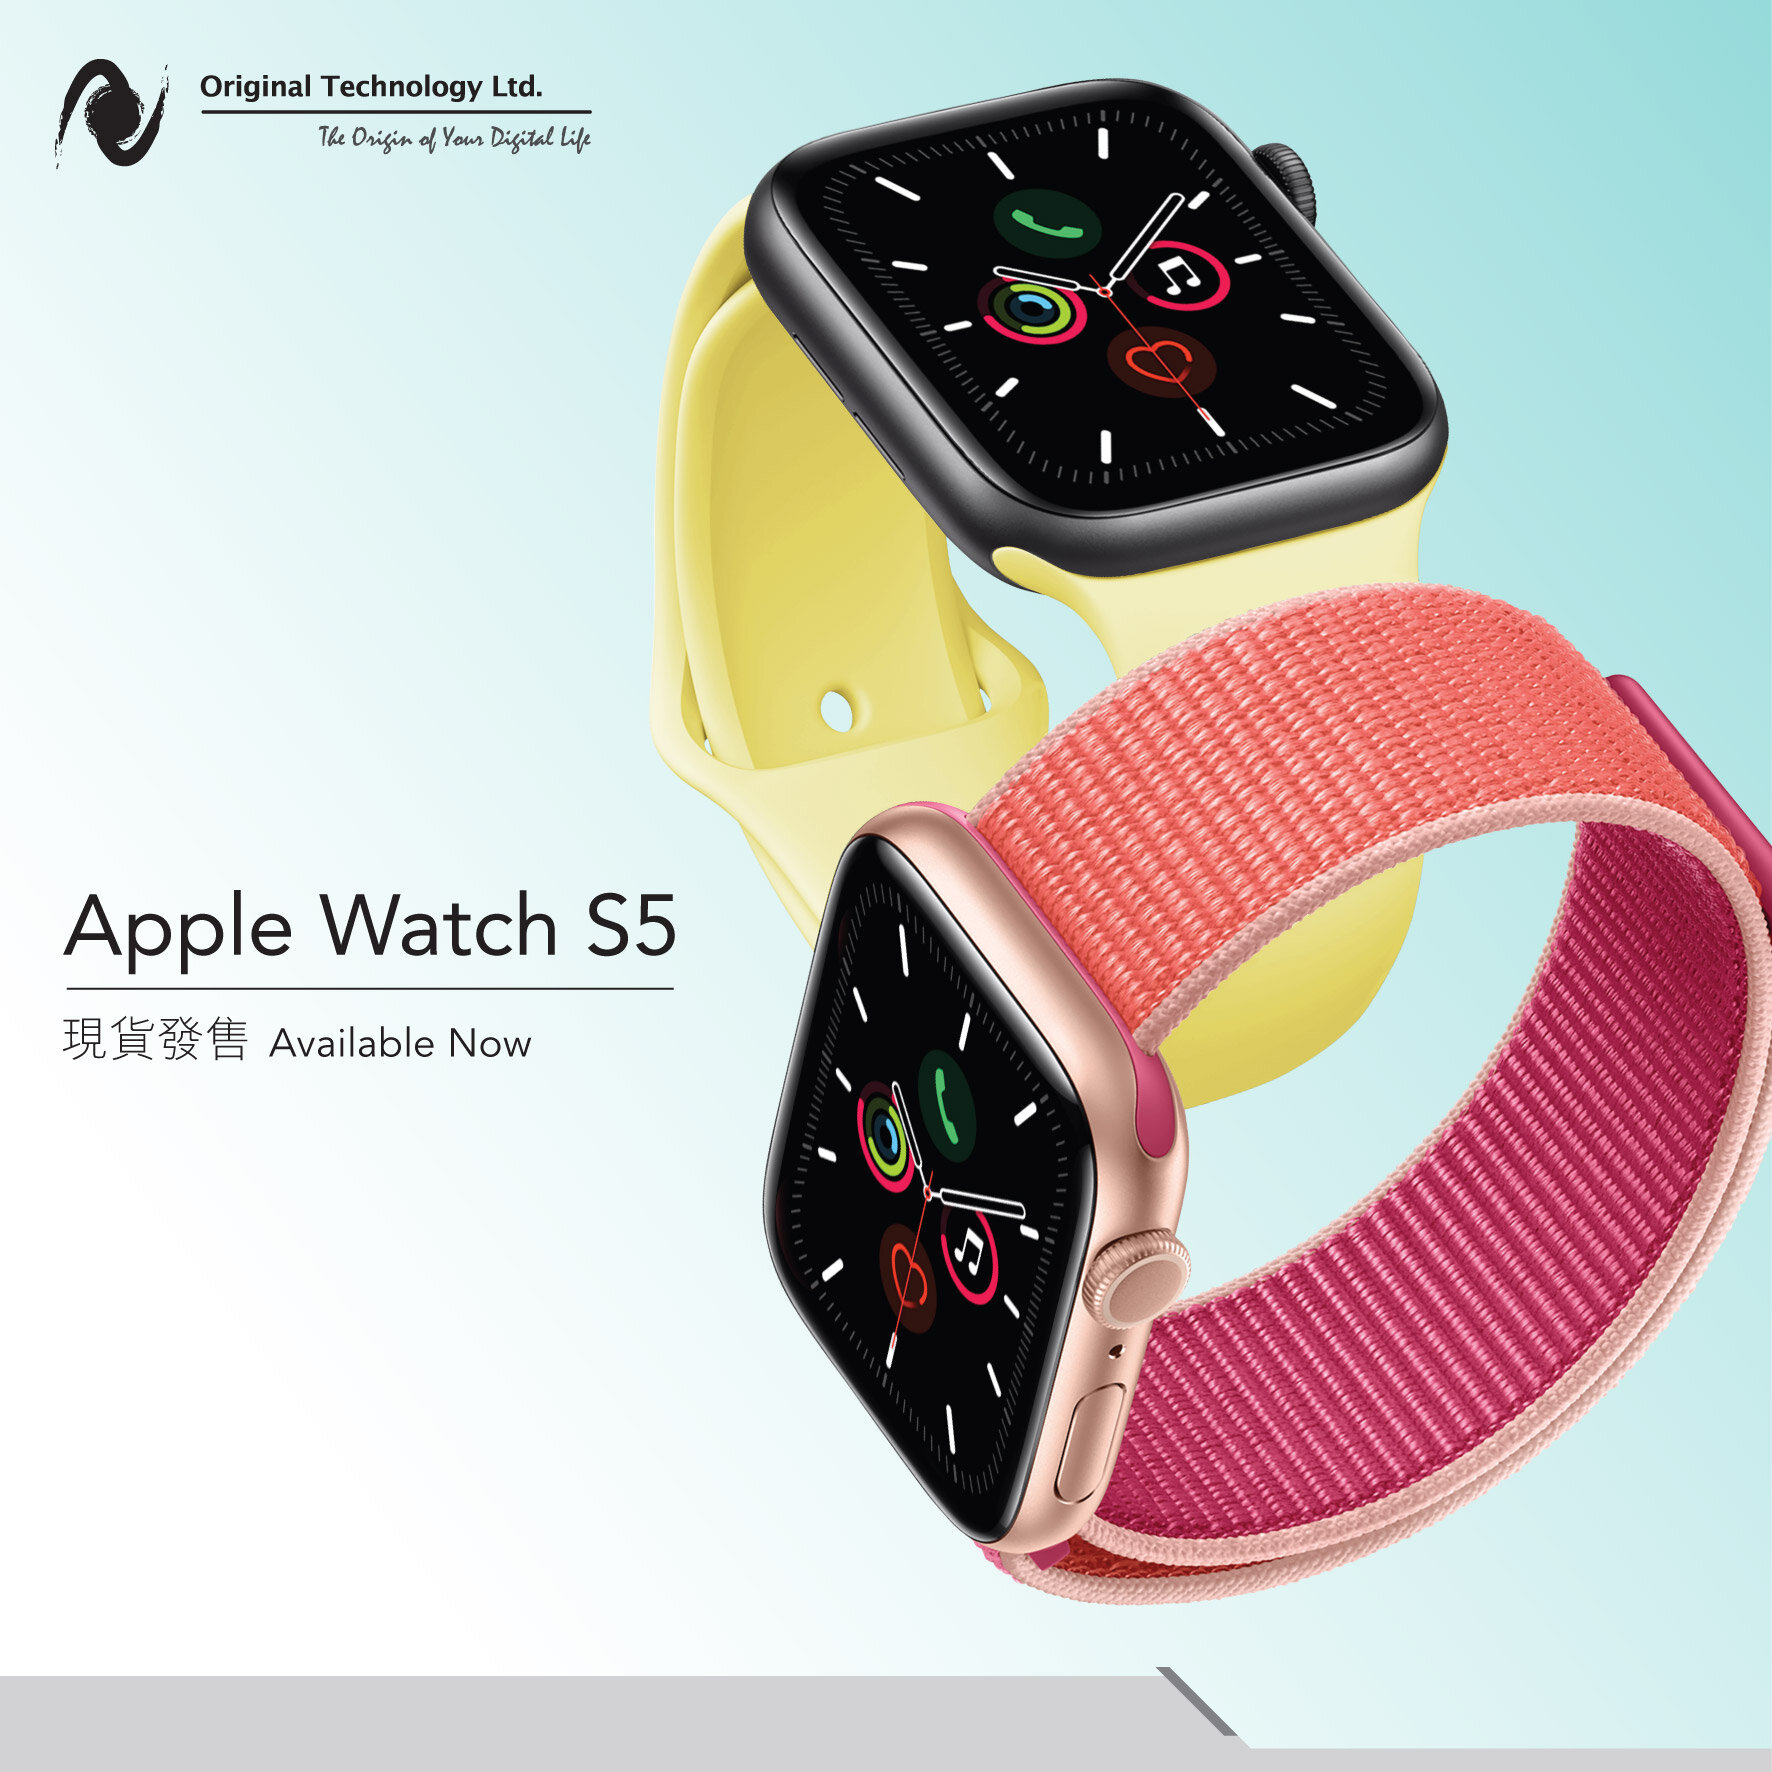 NA02_AppleWatch S5 Available Now_FB_01-01.jpg